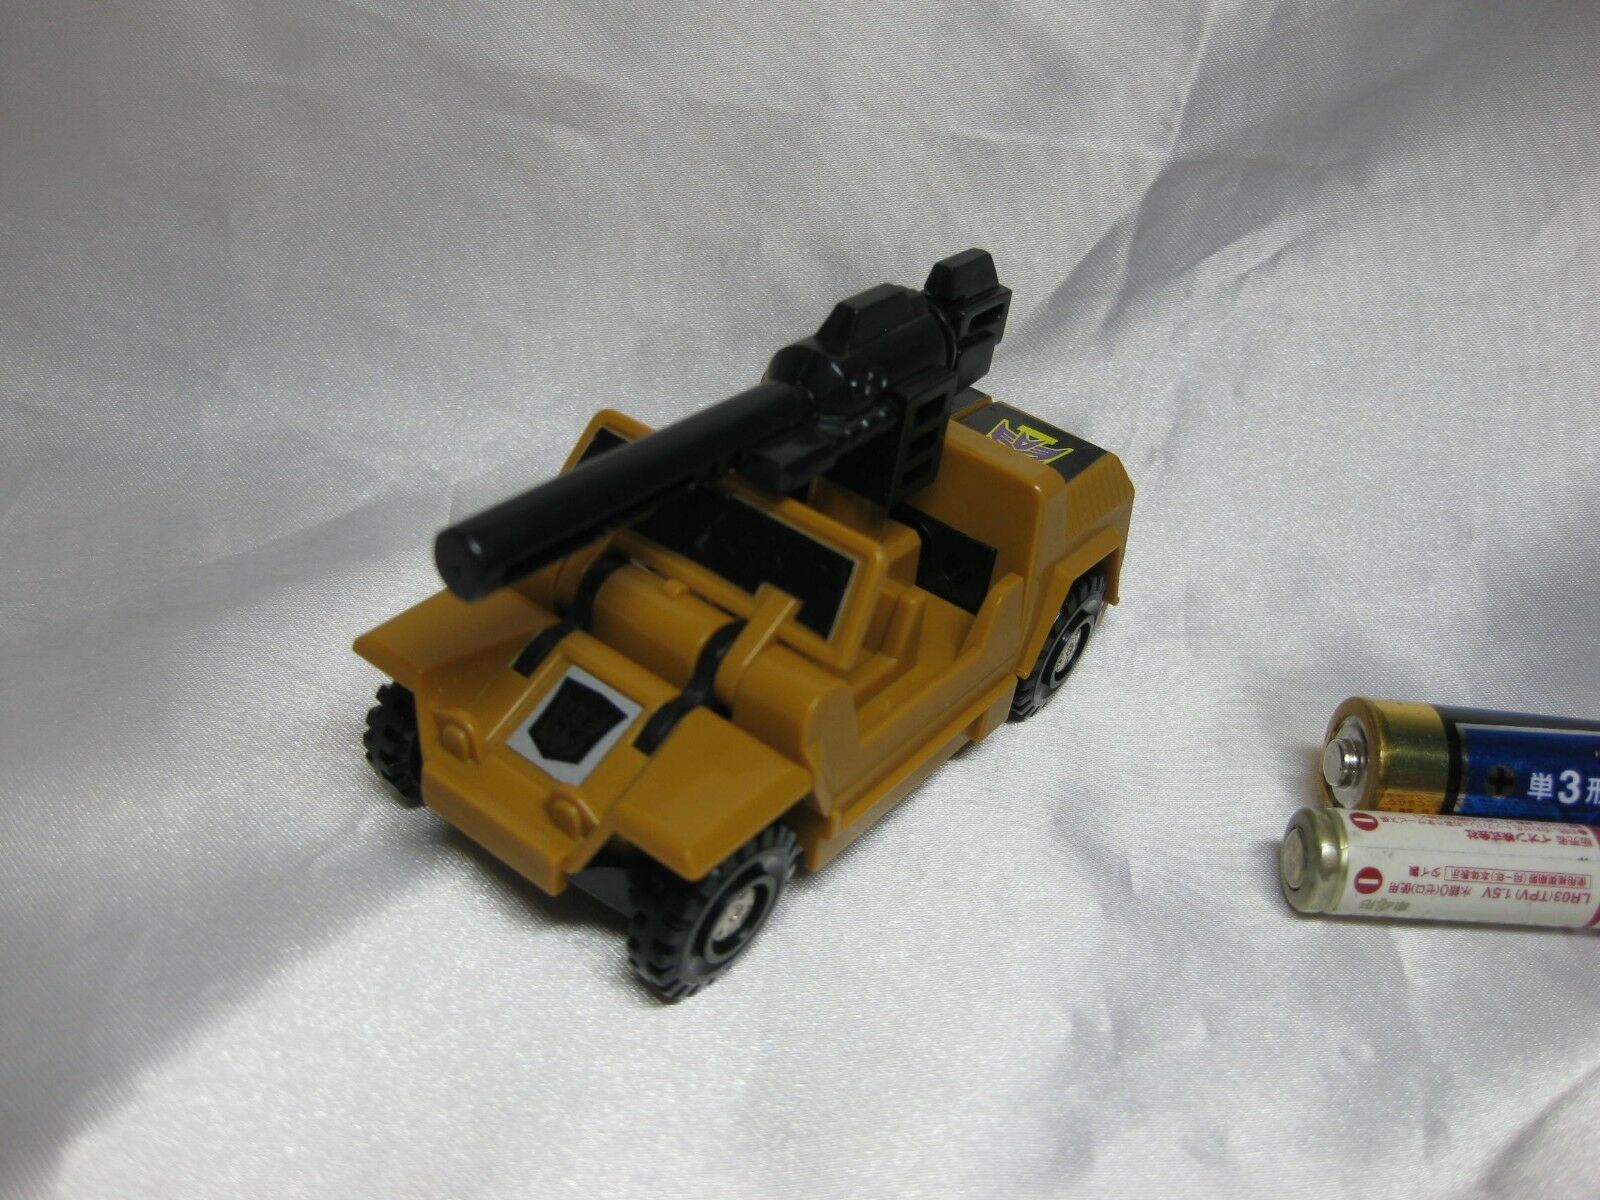 Very Rare Trans formers G1 D-68 Swindle Bruticus Takara 1986 from JAPAN